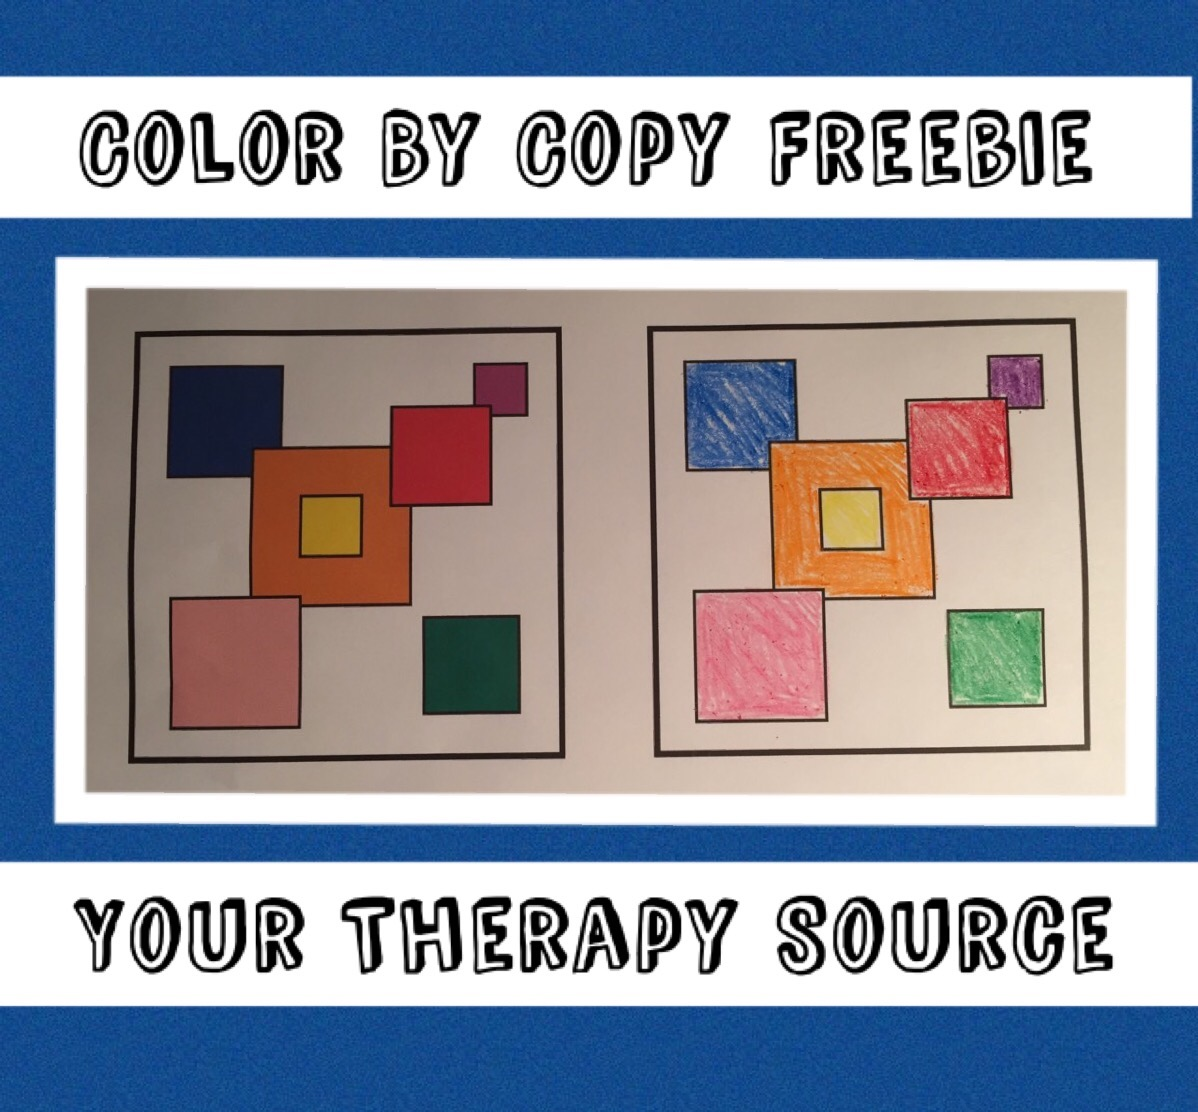 Color By Copy Freebie from https://yourtherapysource.com/freecolorbycopy